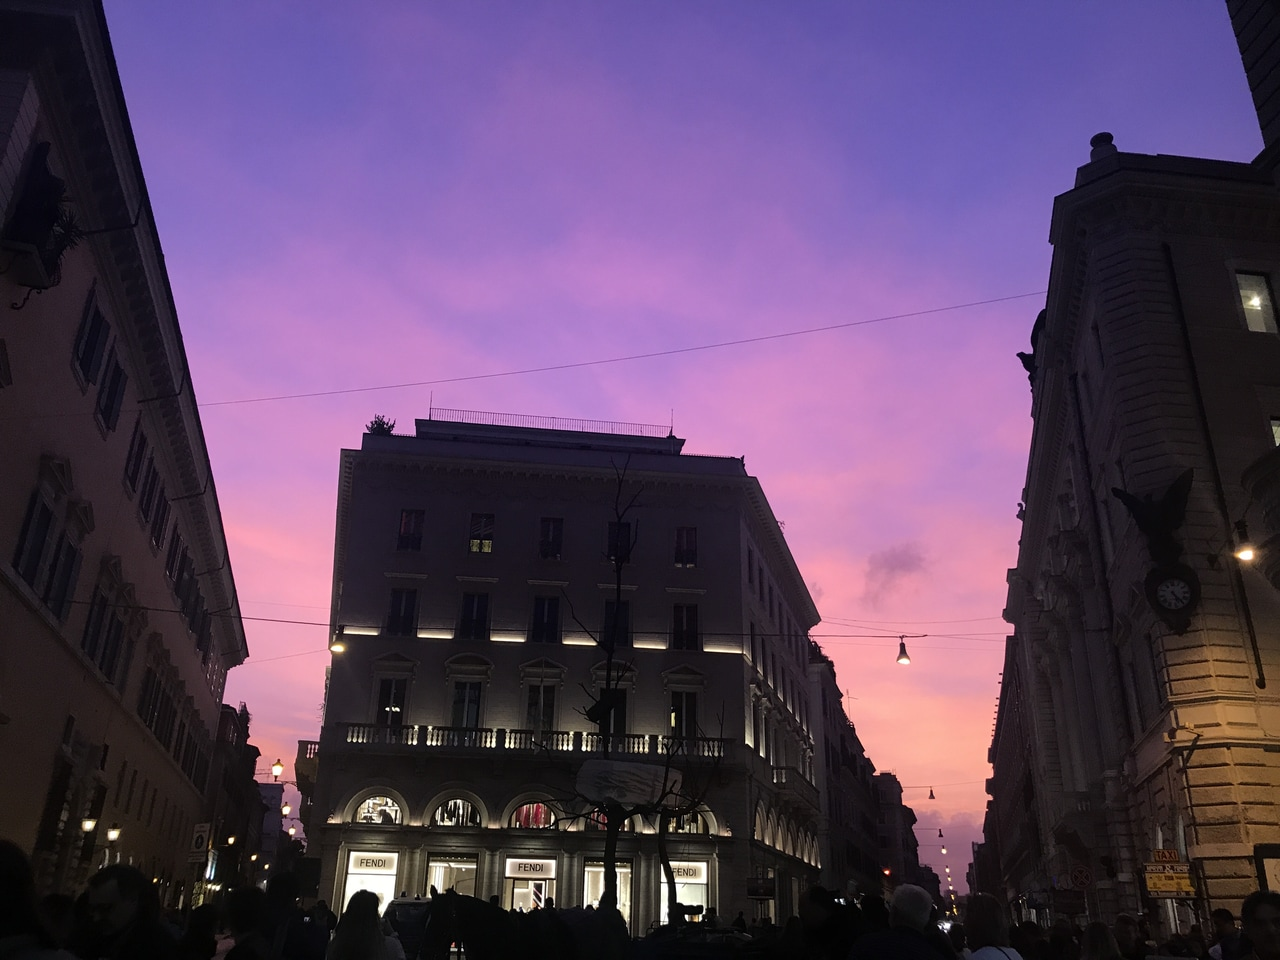 pink, purple sky, fall and pretty sky